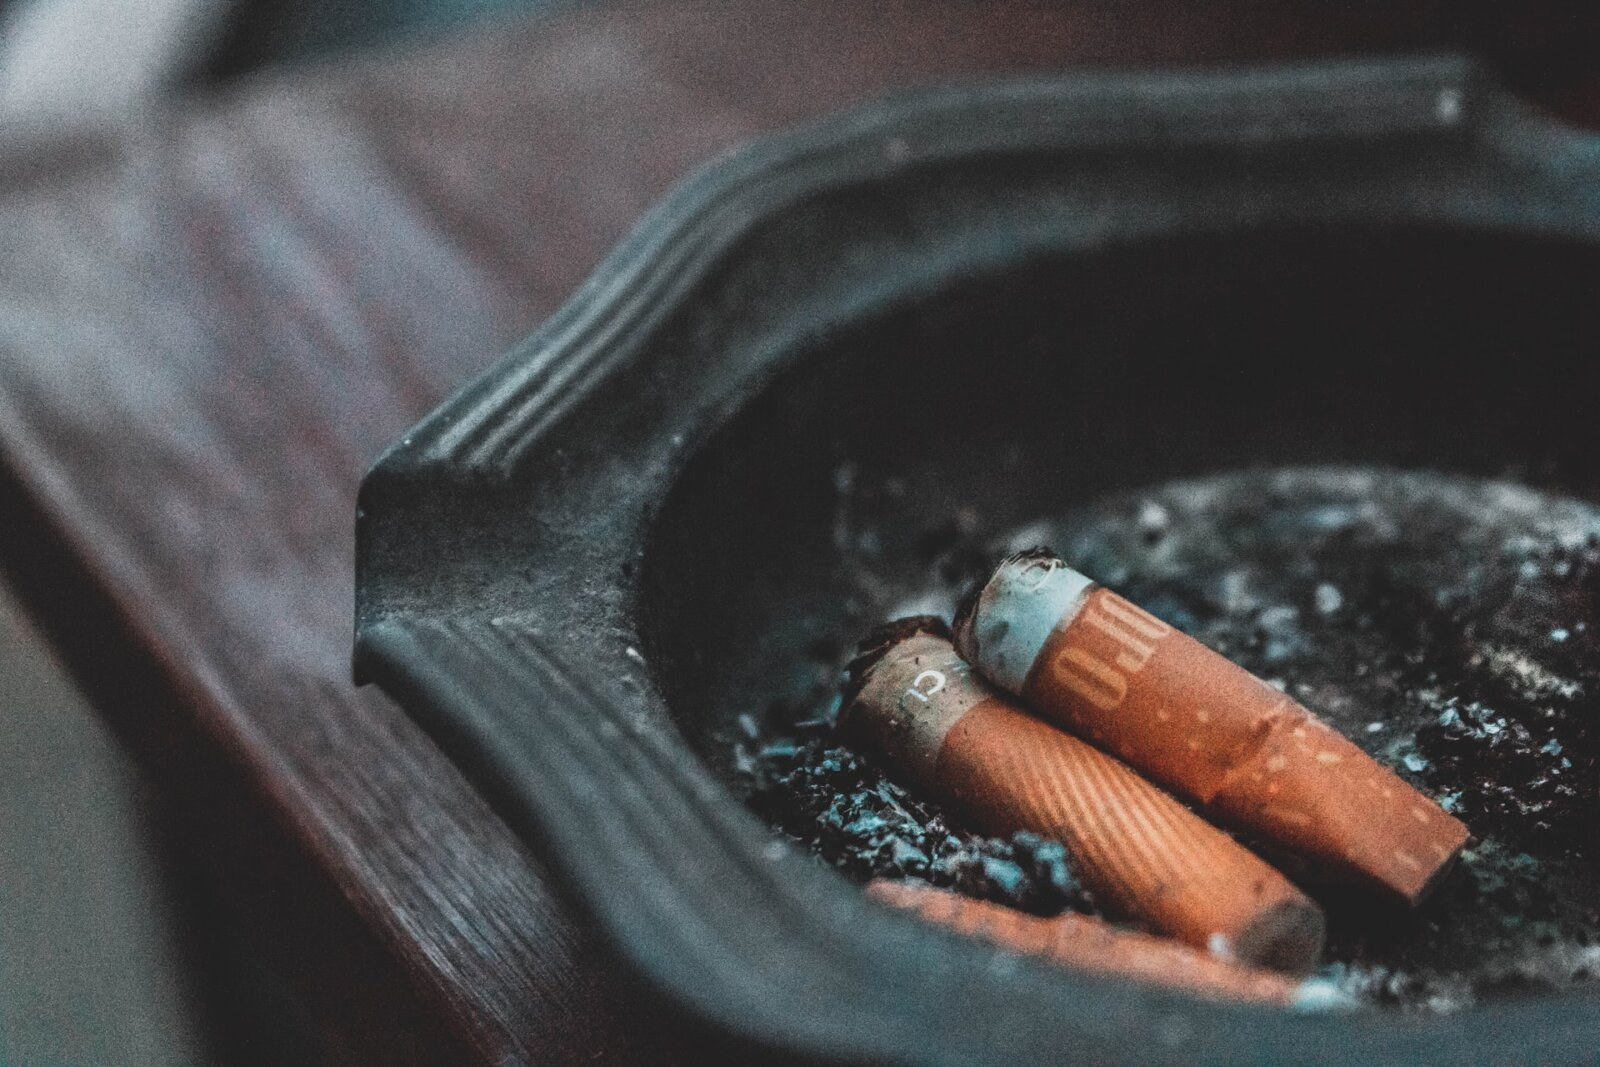 Outdoor smoking ban scrapped – with venues urged to create separate seating areas instead, The Manc